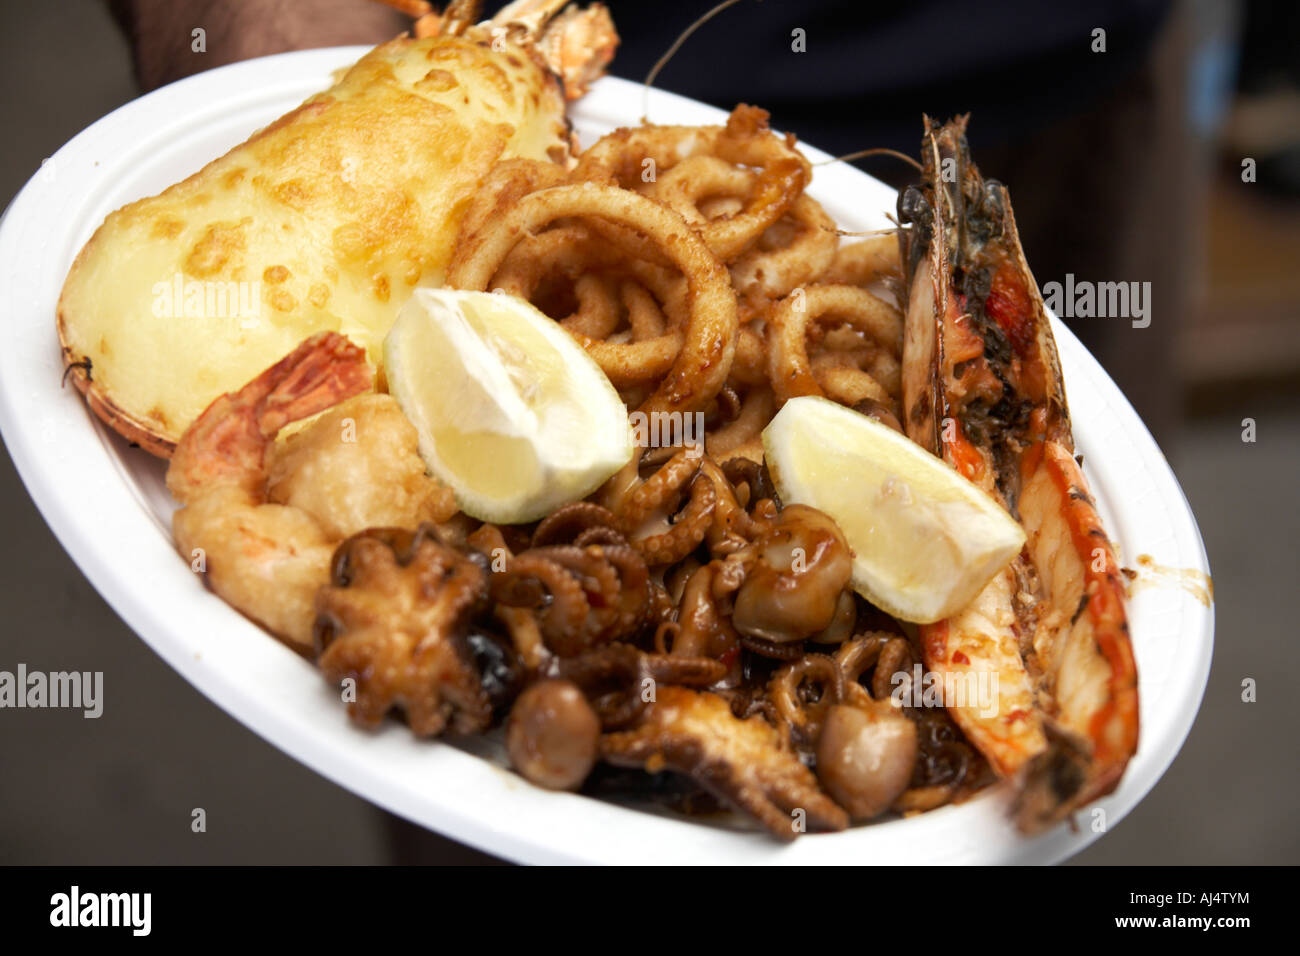 Seafood Platter Dish In Fish Market Restaurant Sydney New South Wales Stock Photo Alamy